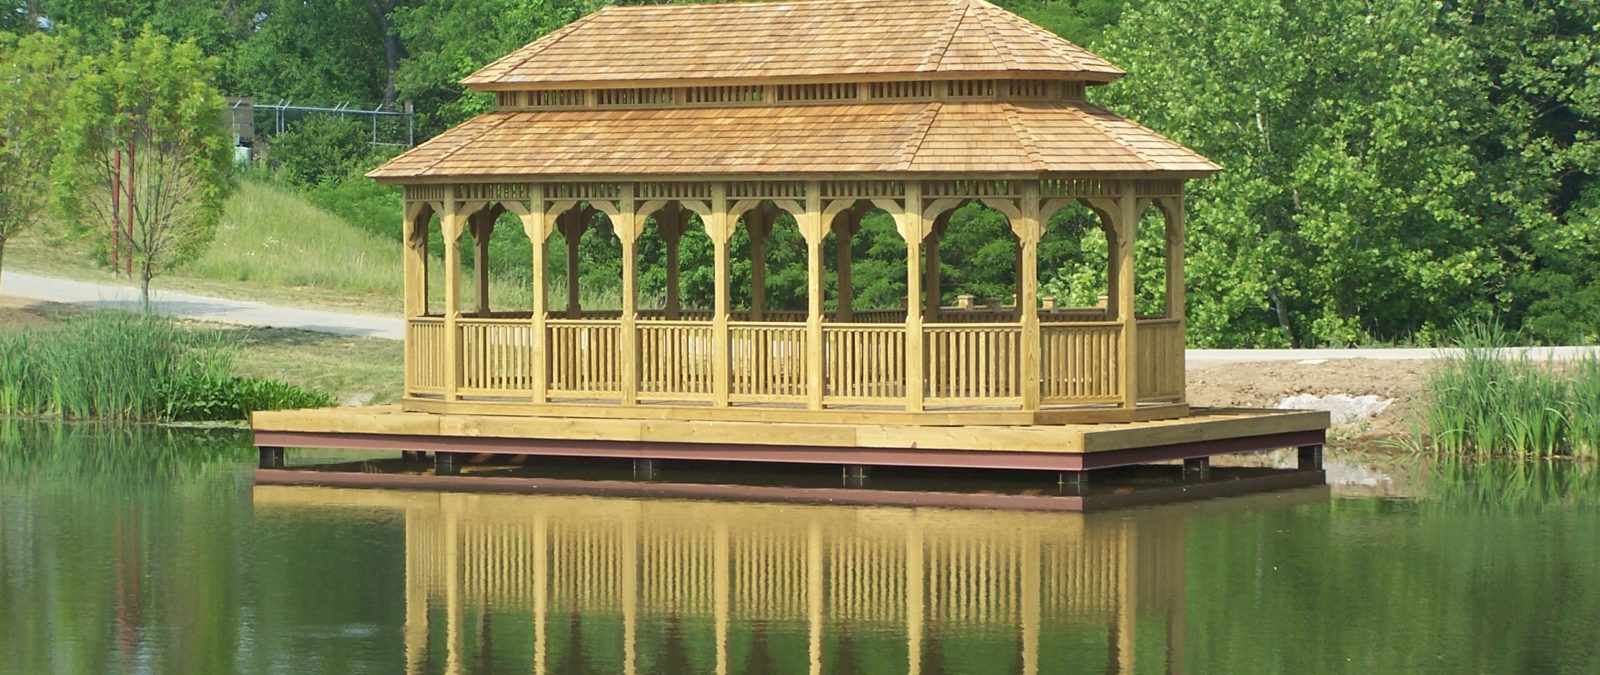 18x36 heavy timber garden gazebo